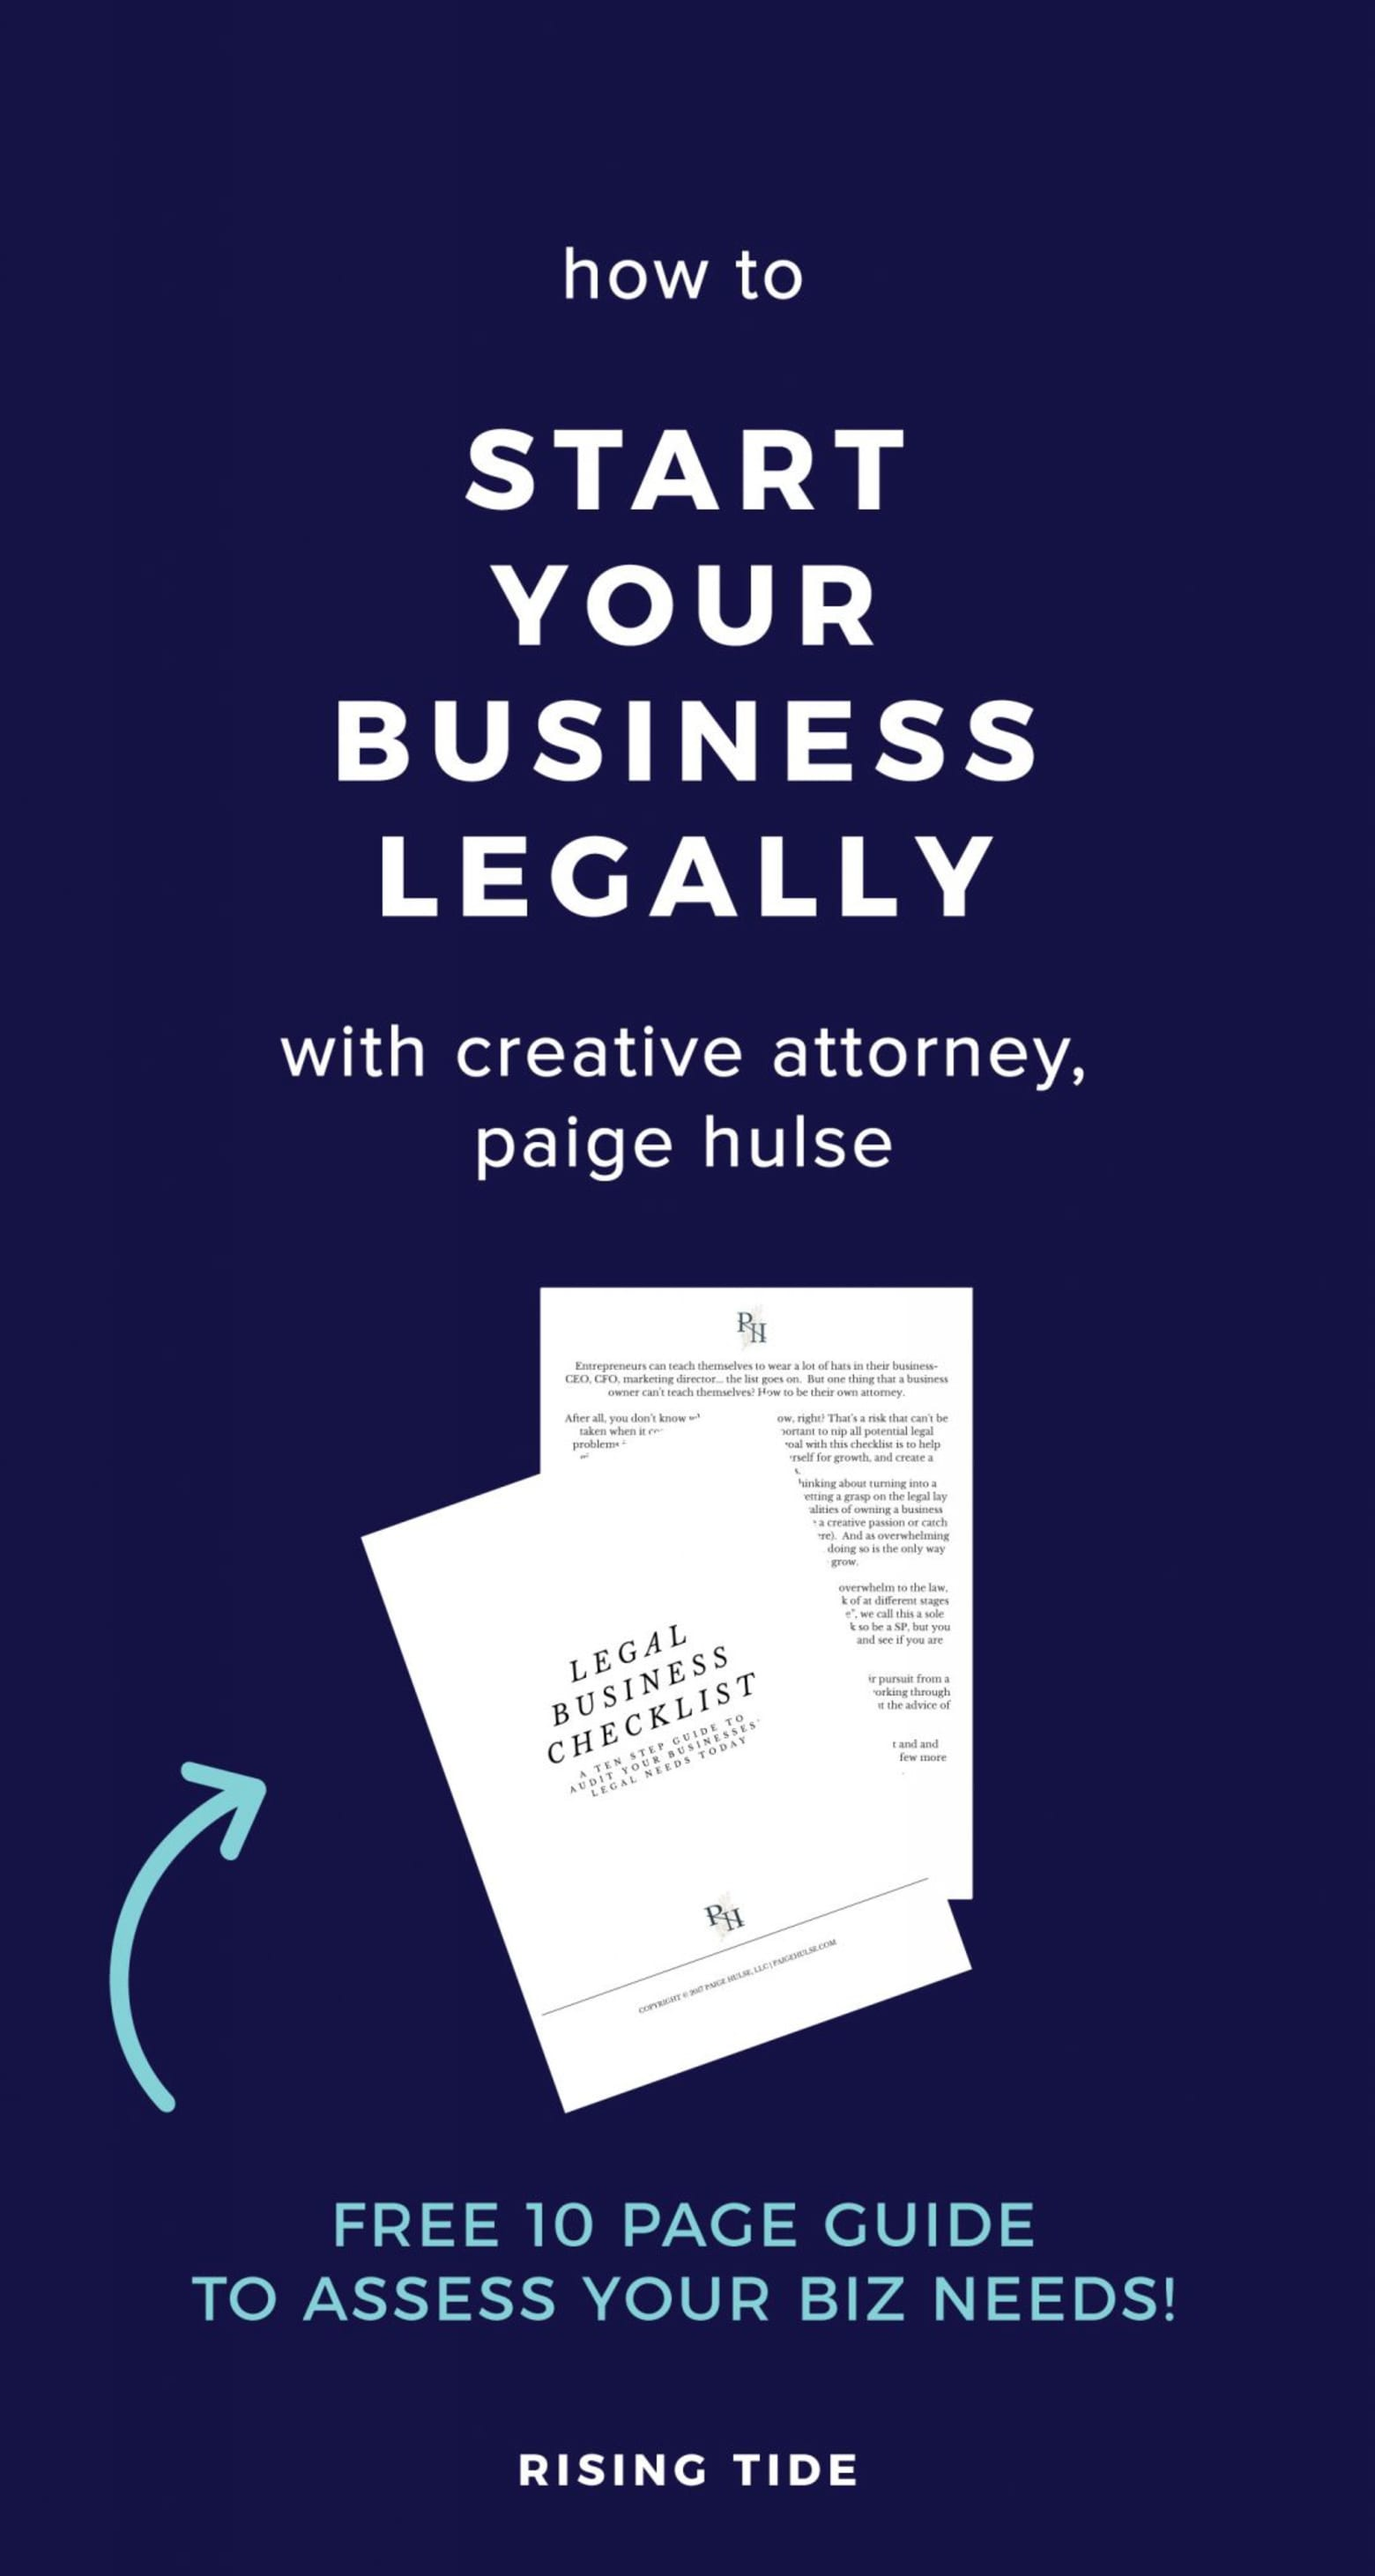 how to start your creative business legally, free guide to assess your business' legal needs, llc, sole-proprietor, dba, business legal checklist